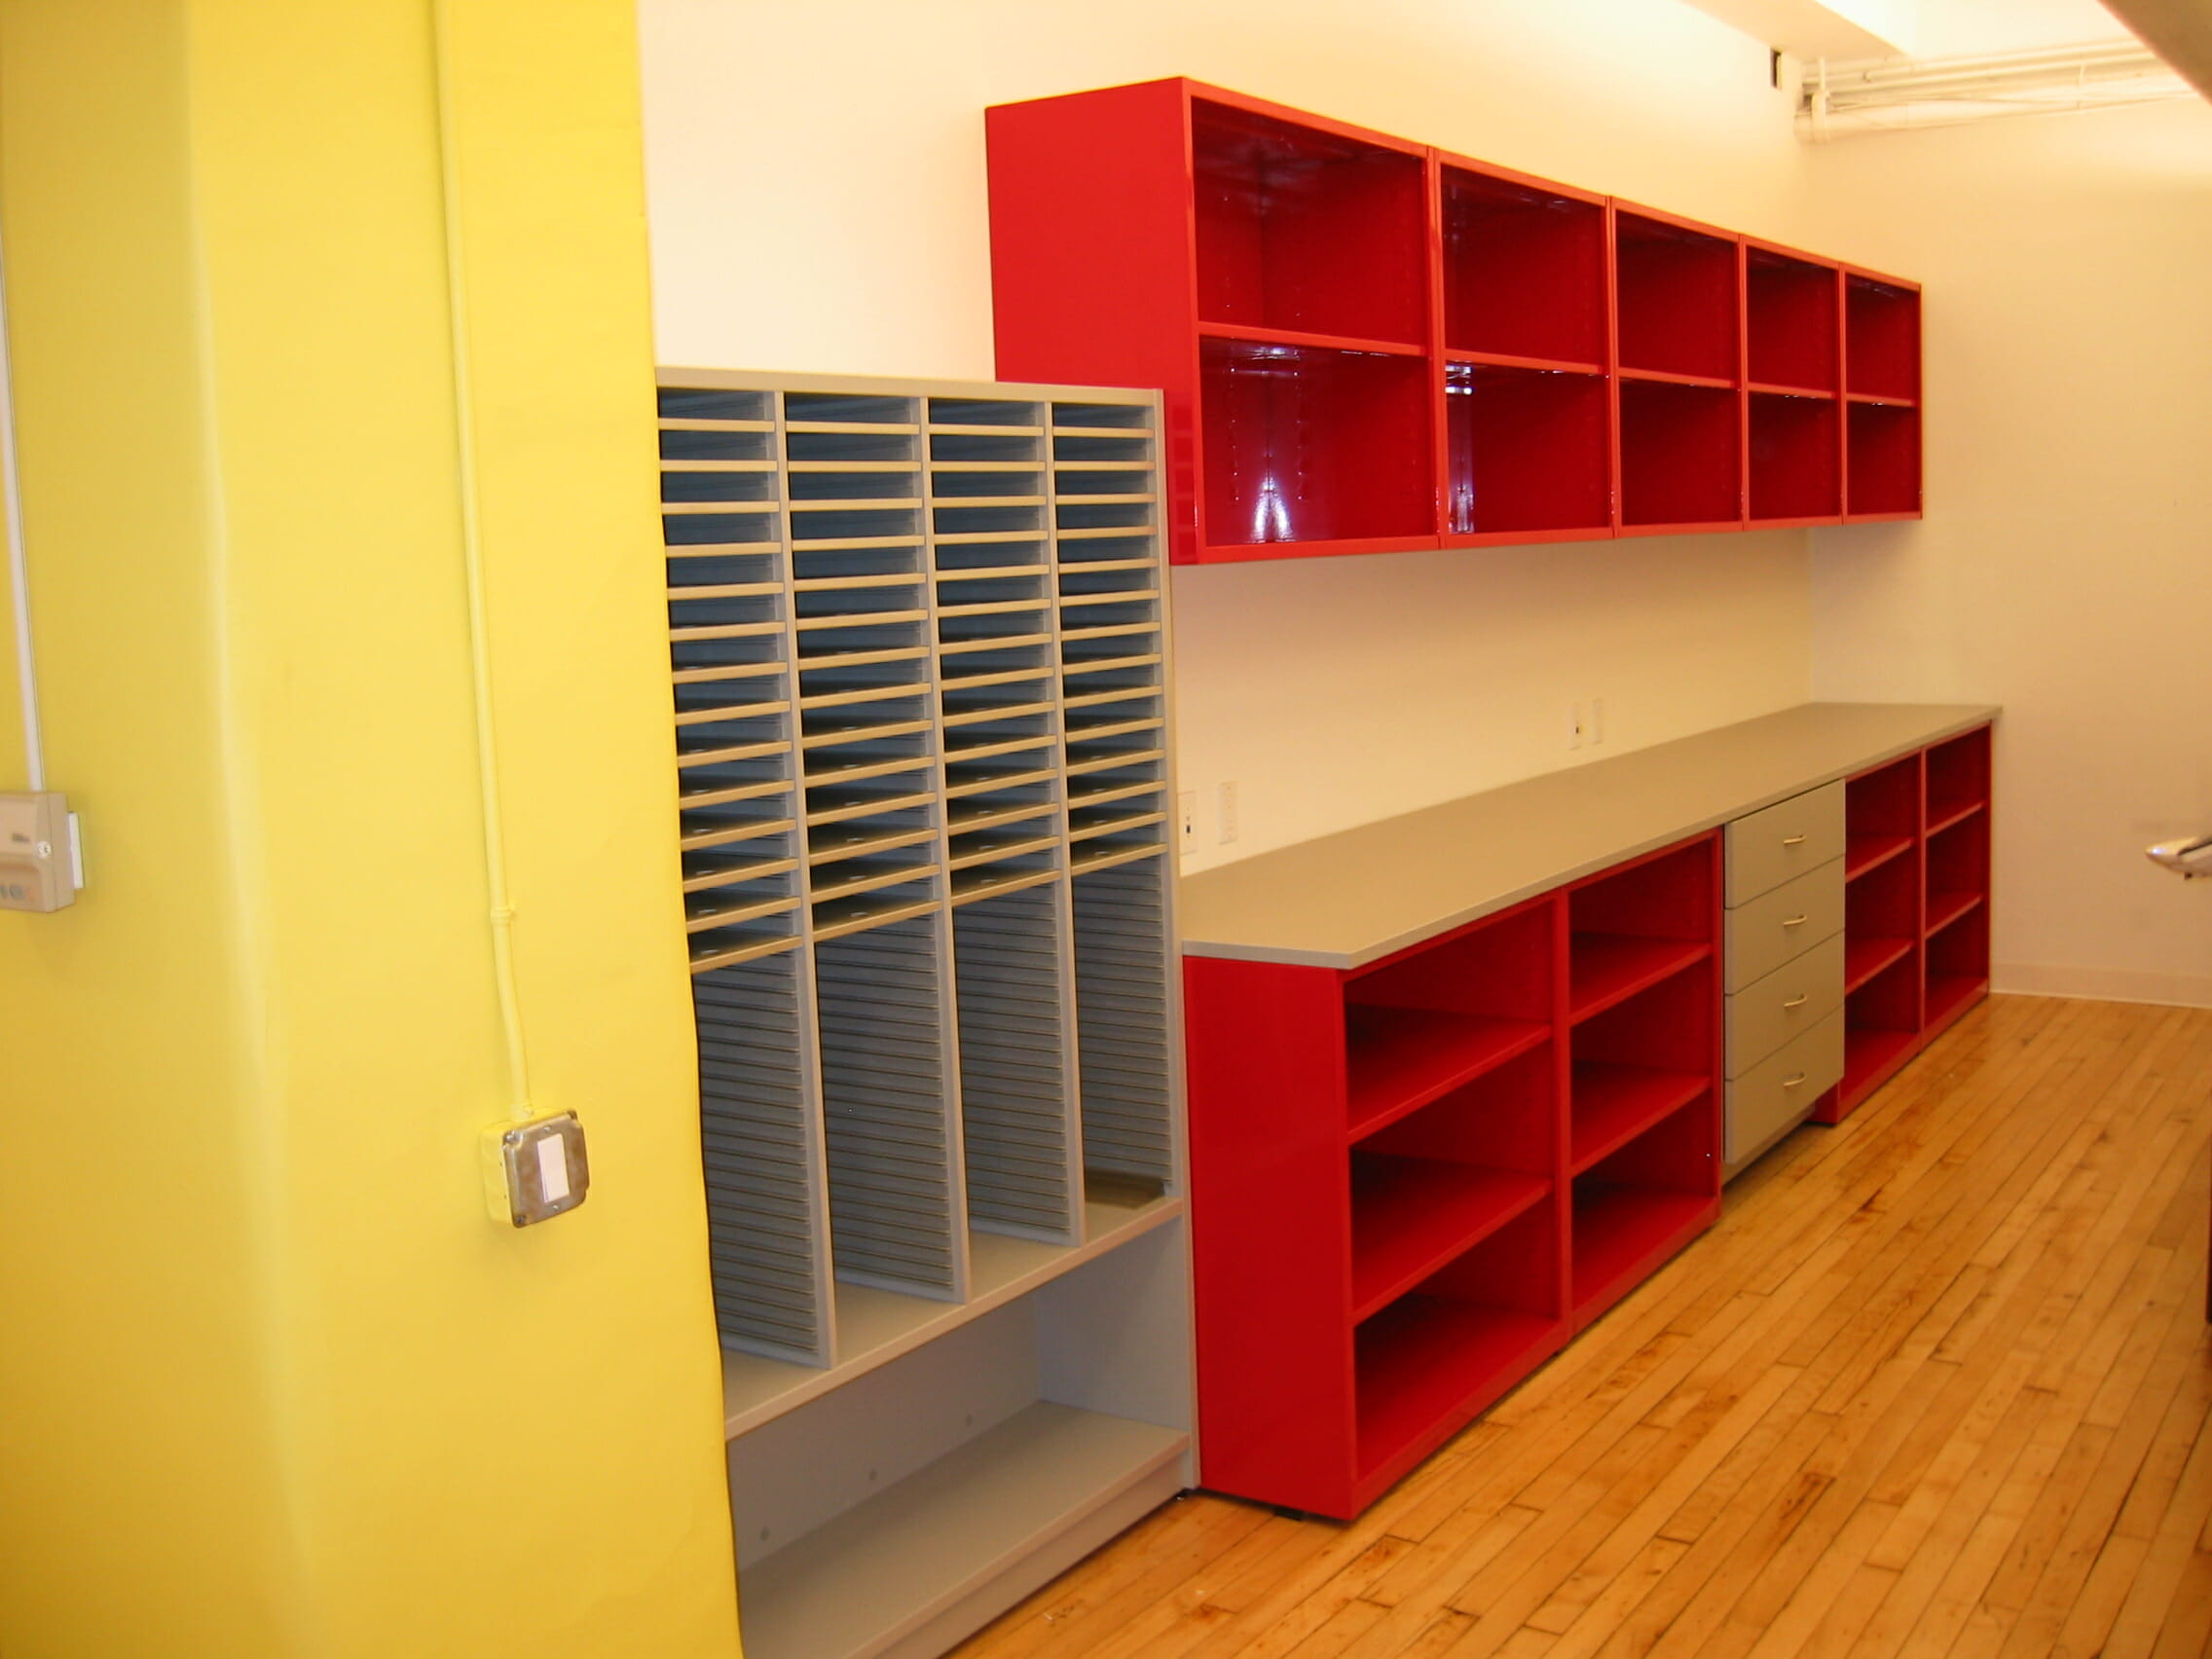 Photo office furniture installation images keswick for Decor fusion interior design agency manchester m3